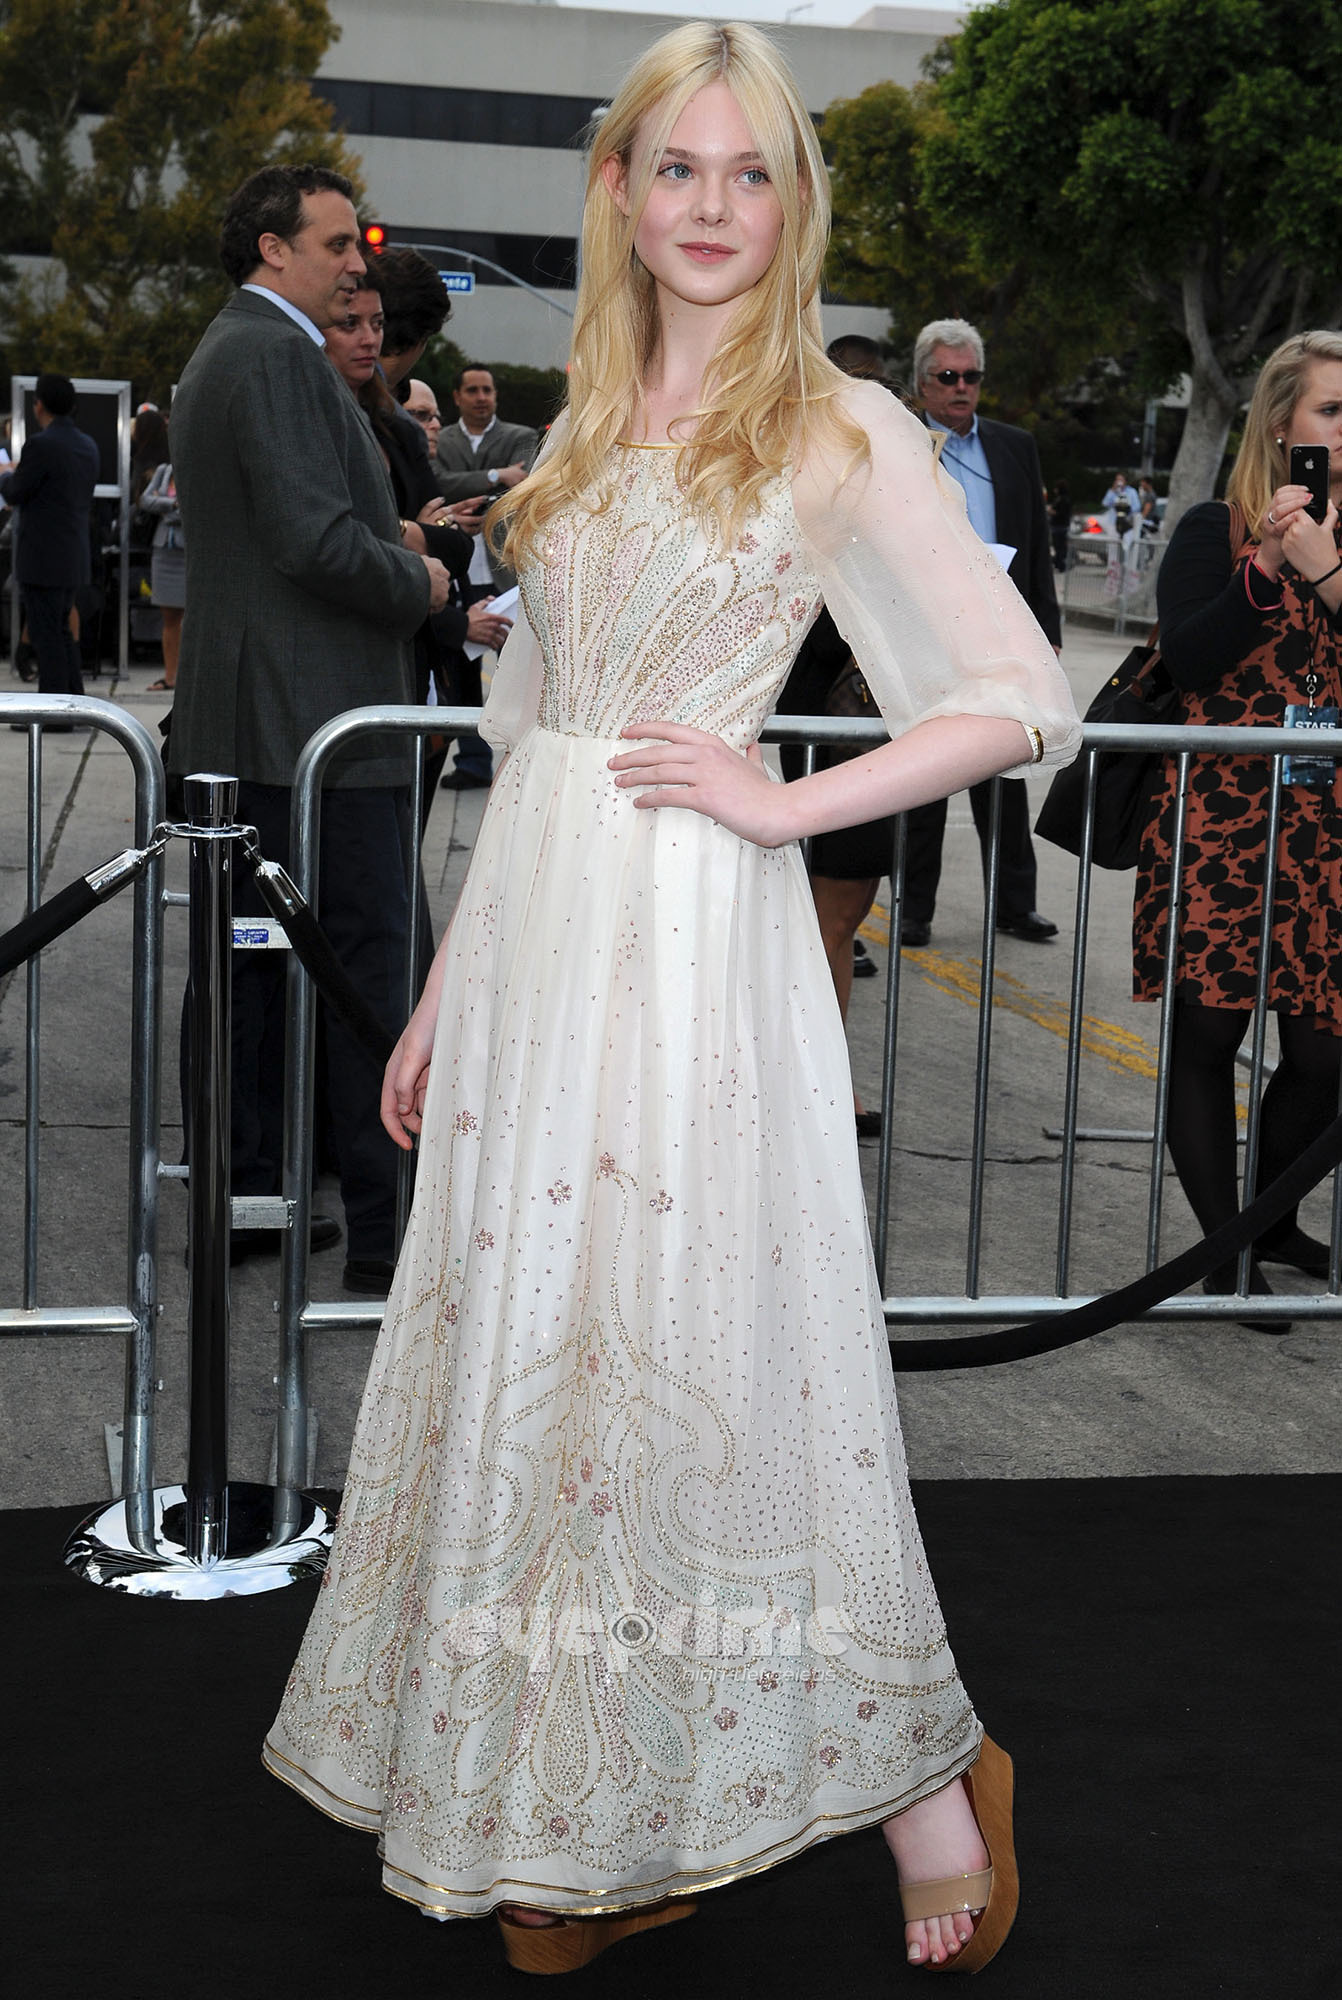 Elle Fanning HQ http://www.fanpop.com/clubs/elle-fanning/images/22726187/title/super-8-los-angeles-premiere-hq-photo